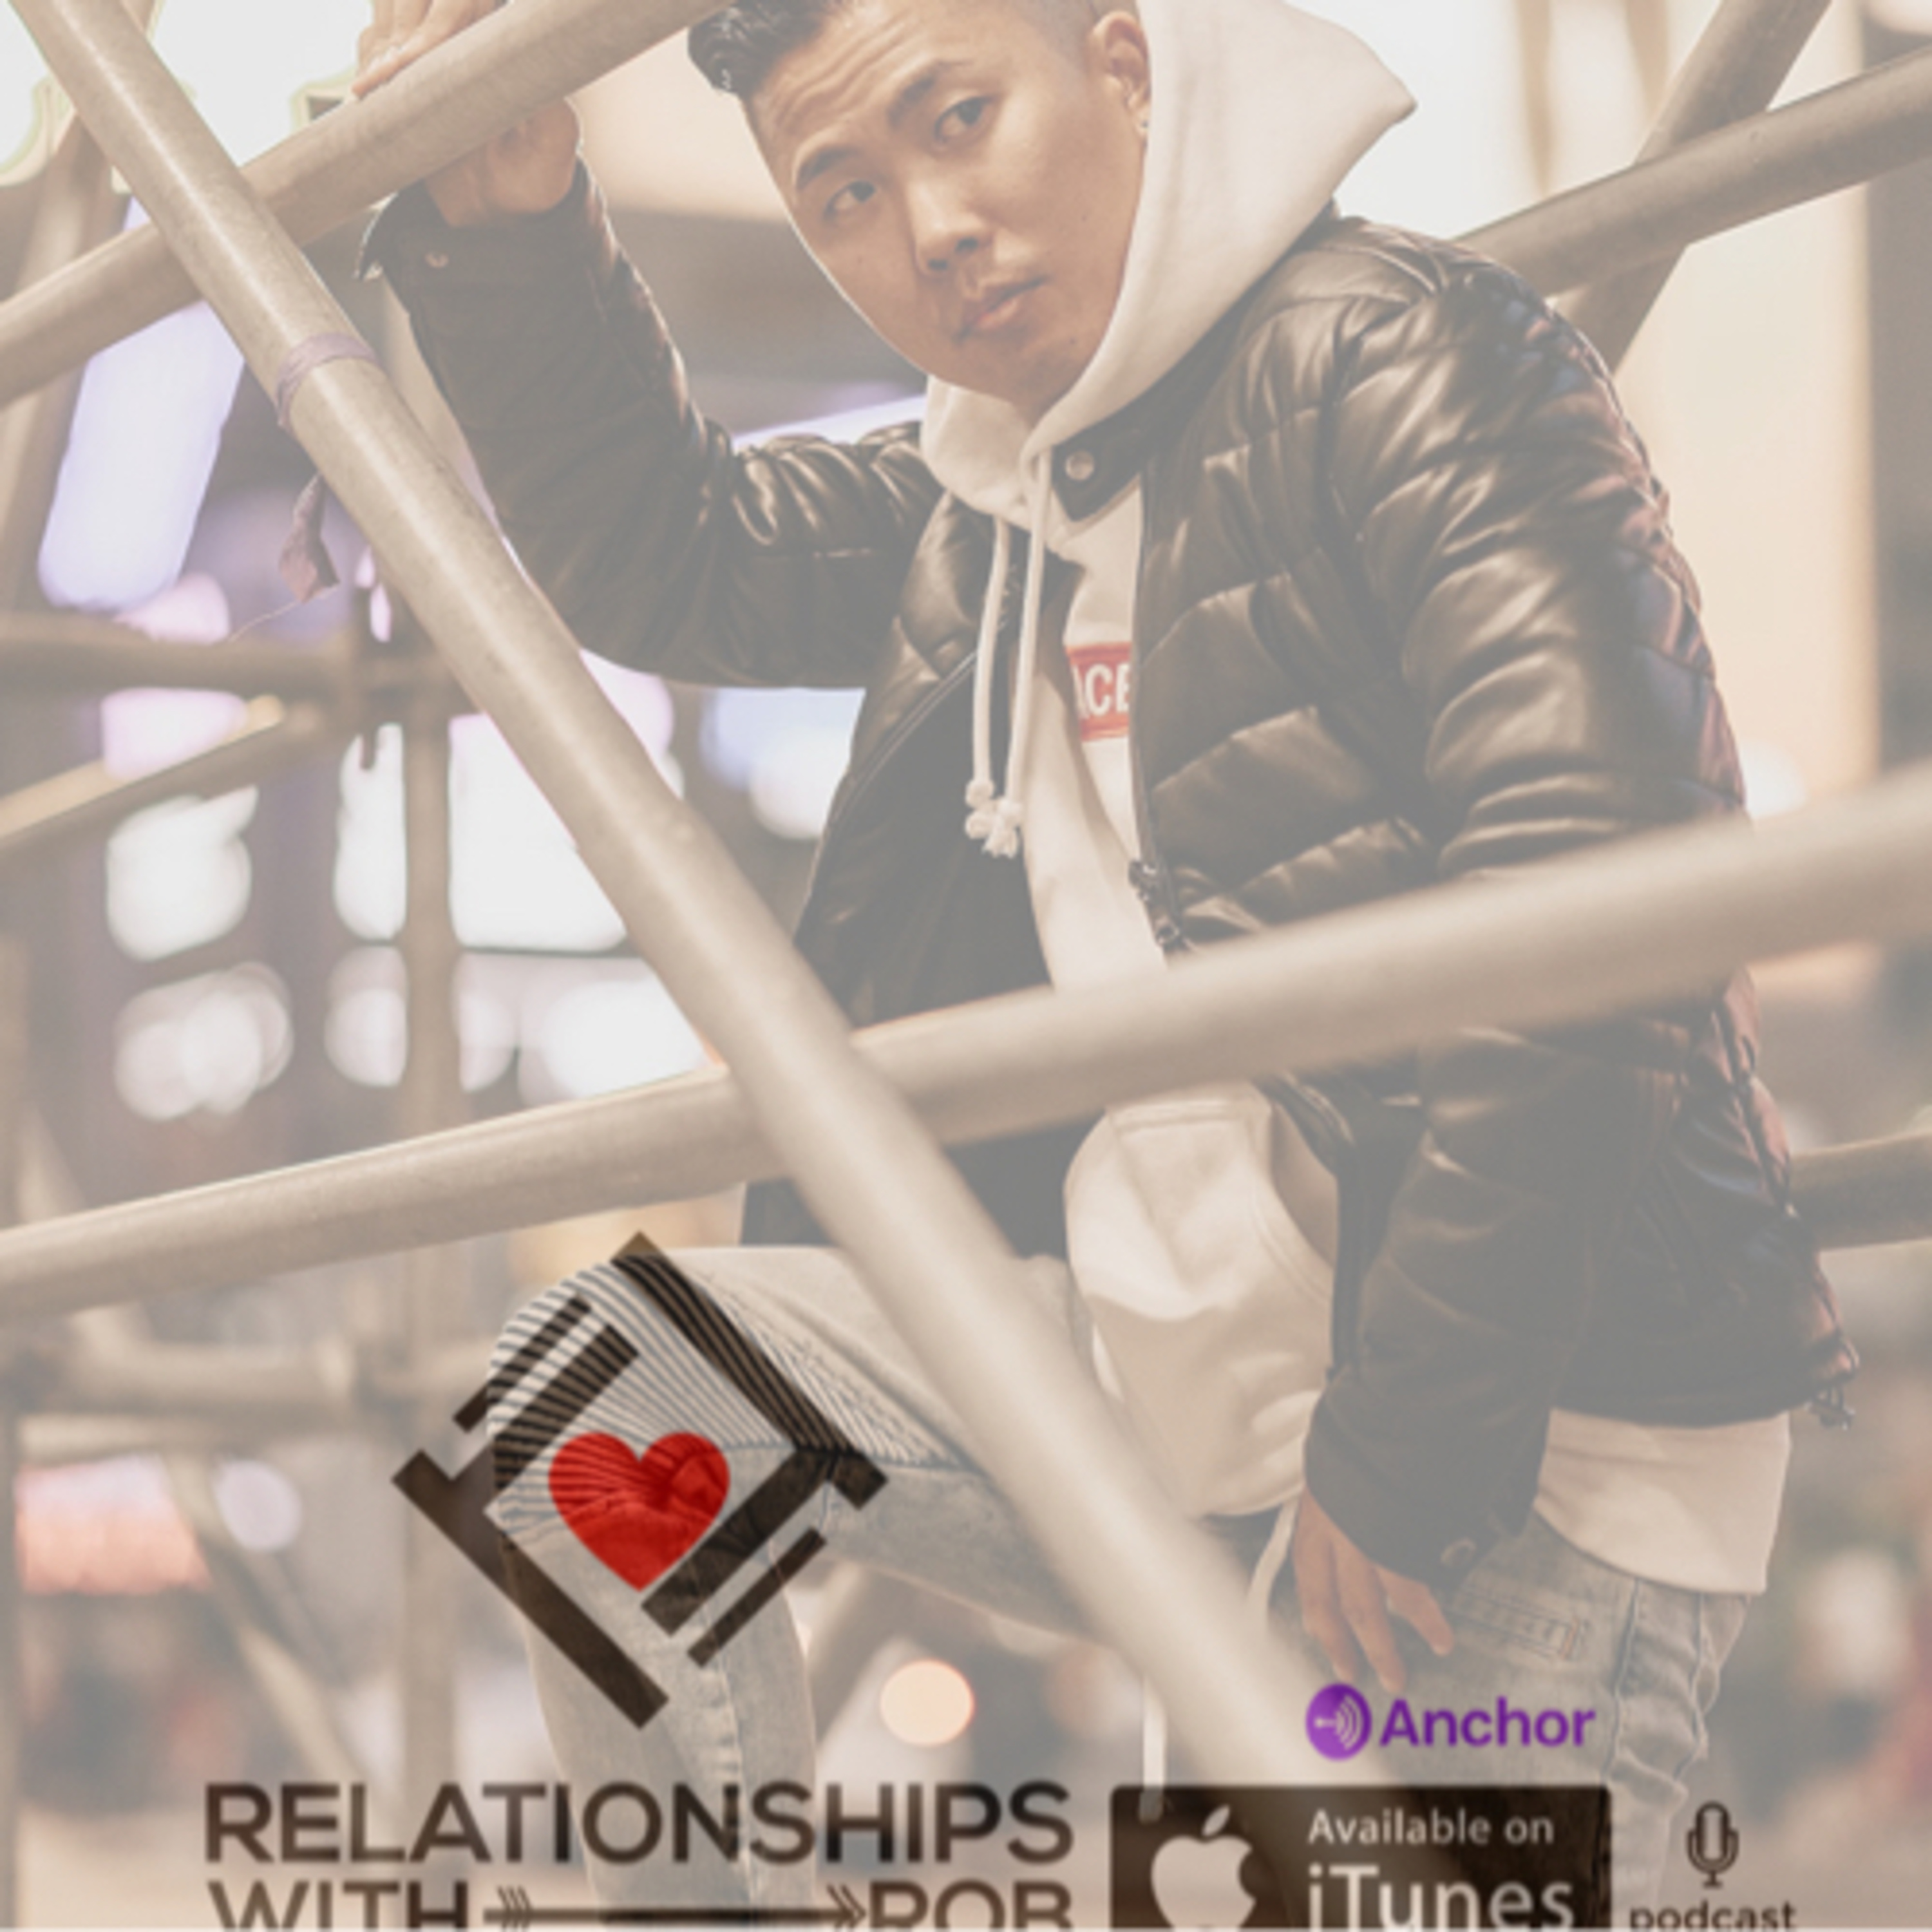 Kickin' it with Jesus Balderas | Relationships with Rob